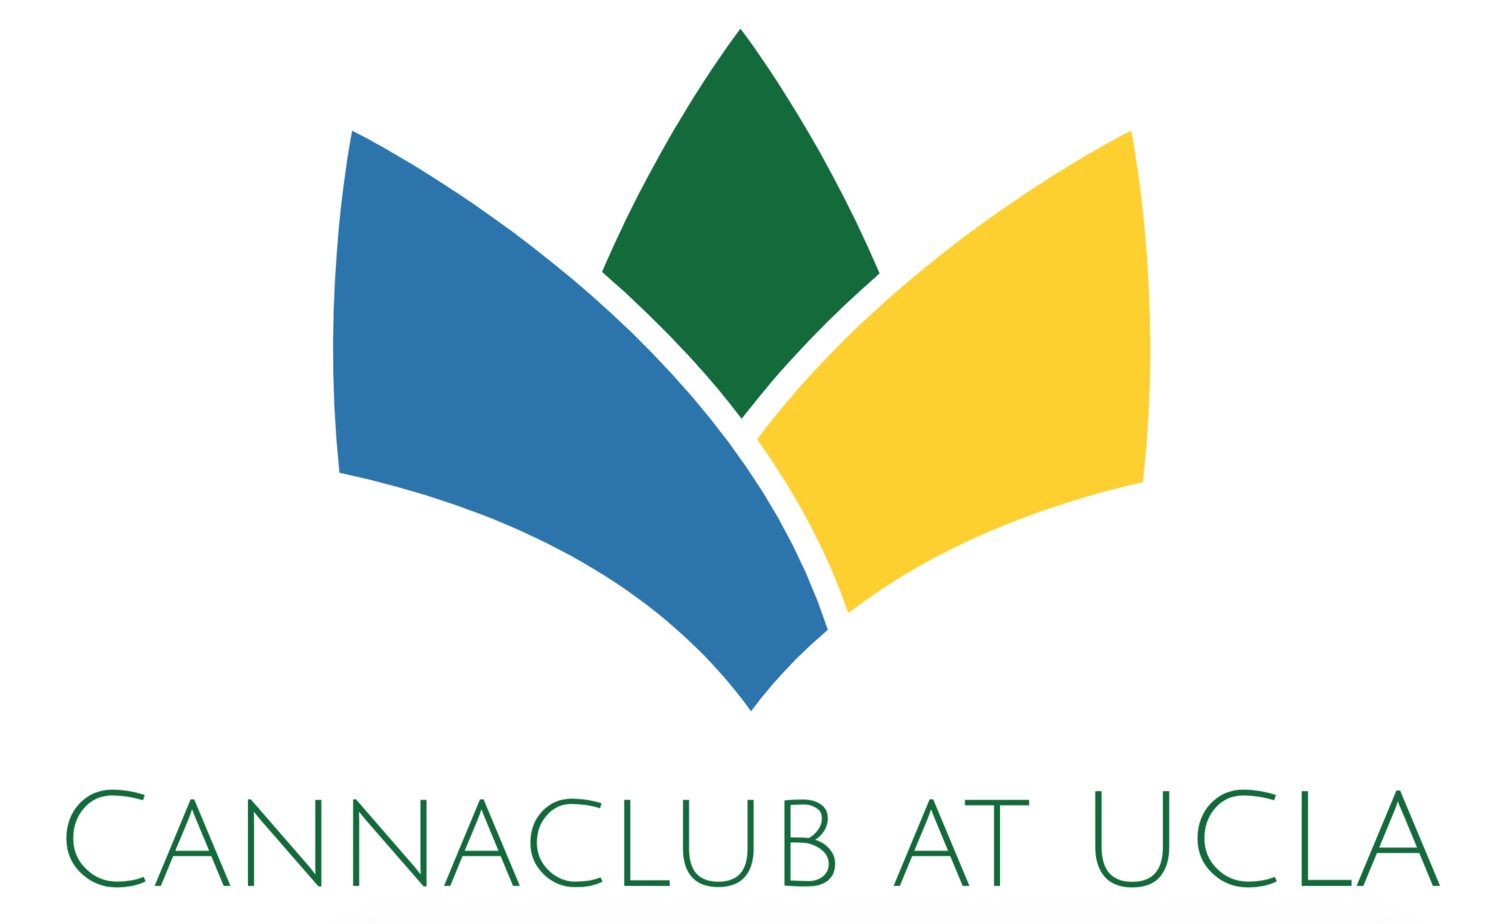 Cannaclub at UCLA